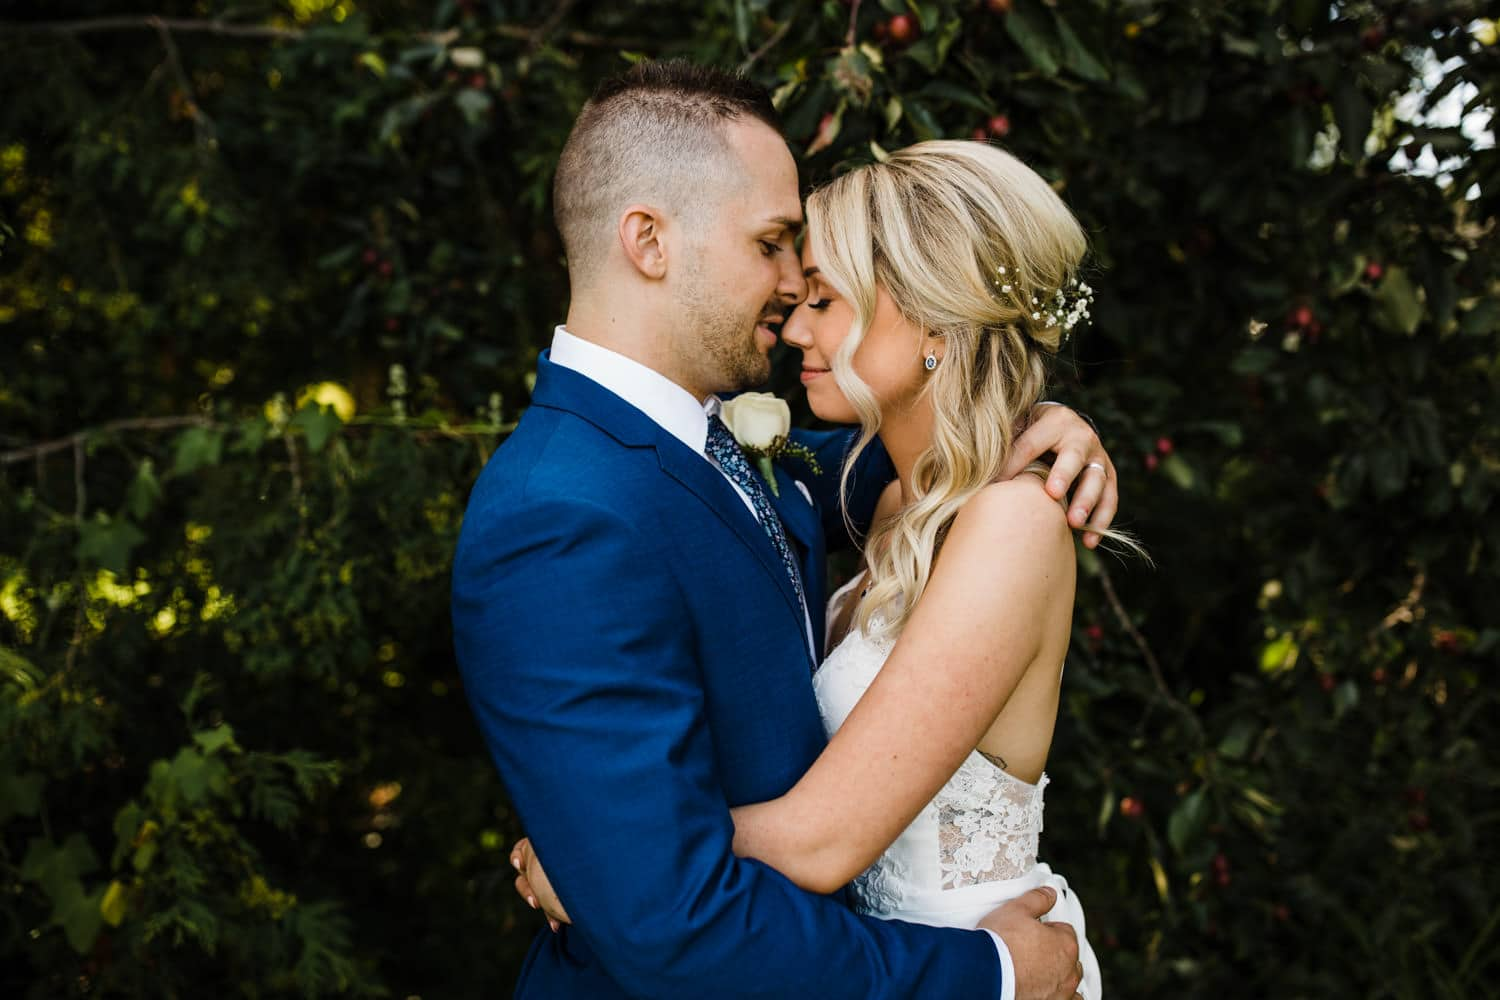 bride and groom embrace - summer strathmere wedding - carley teresa photography